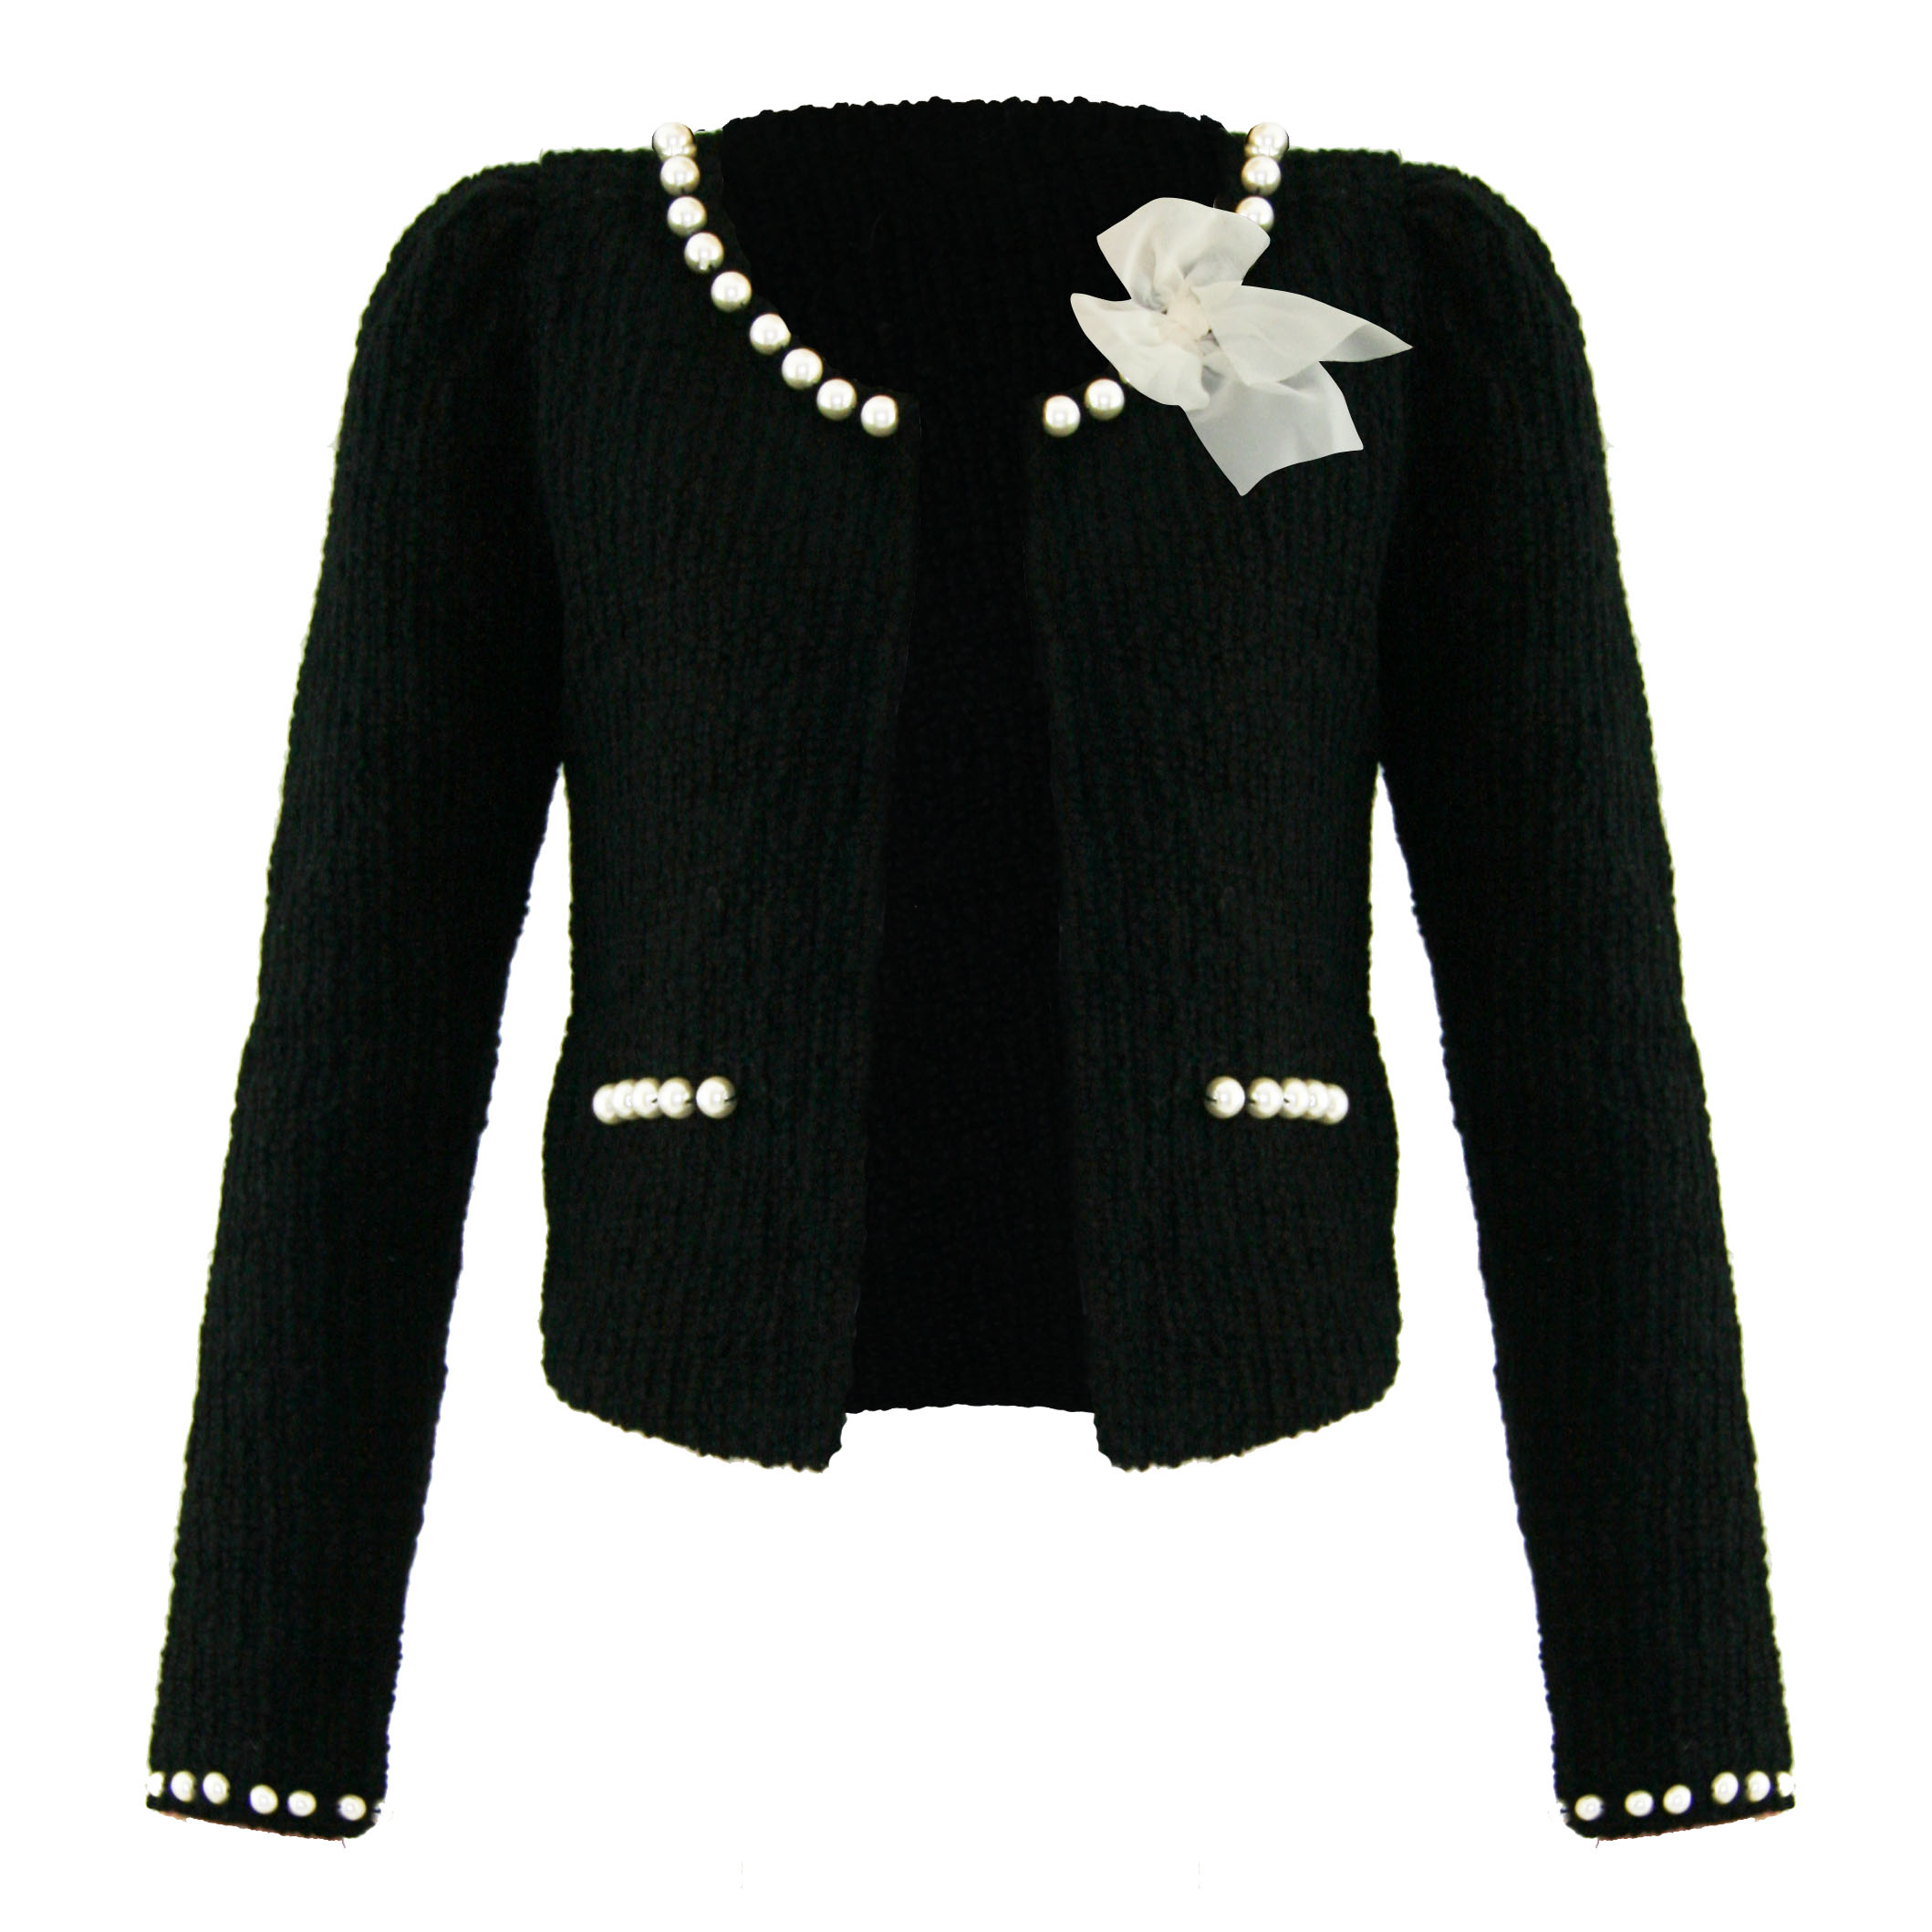 Soma London Ladies New Black Boucle Pearl Retro 50s 60s Cardigan ...